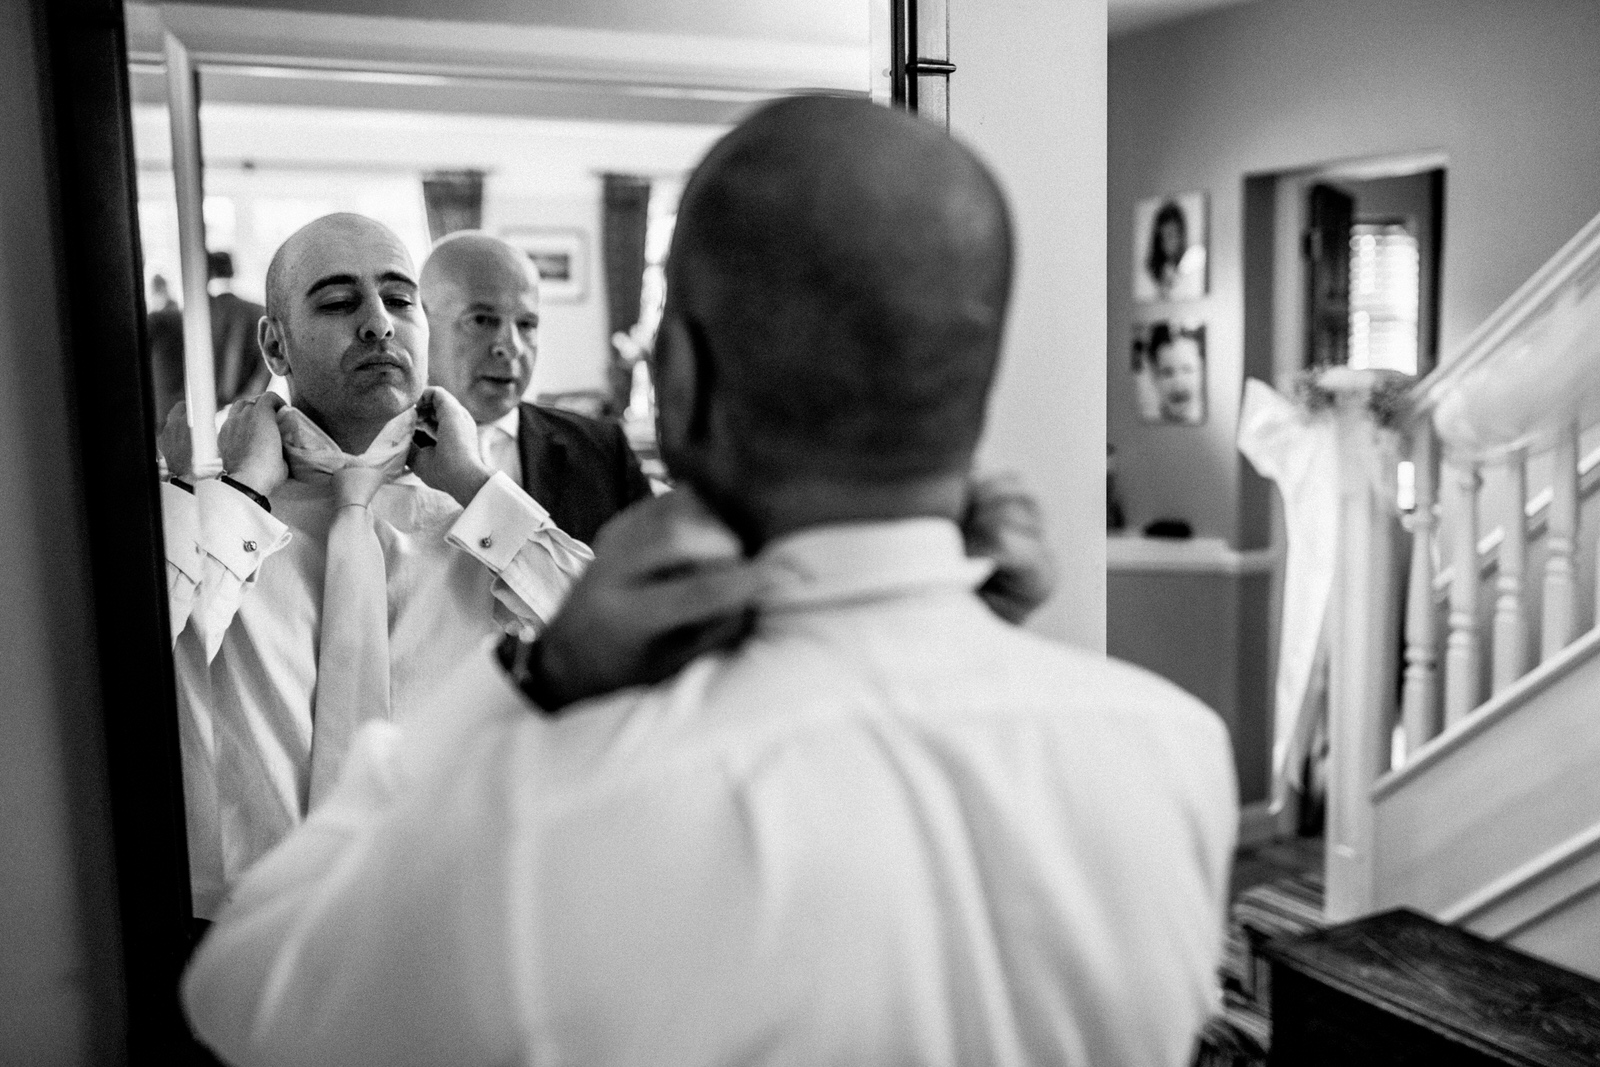 guy putting tie on in mirror for wedding